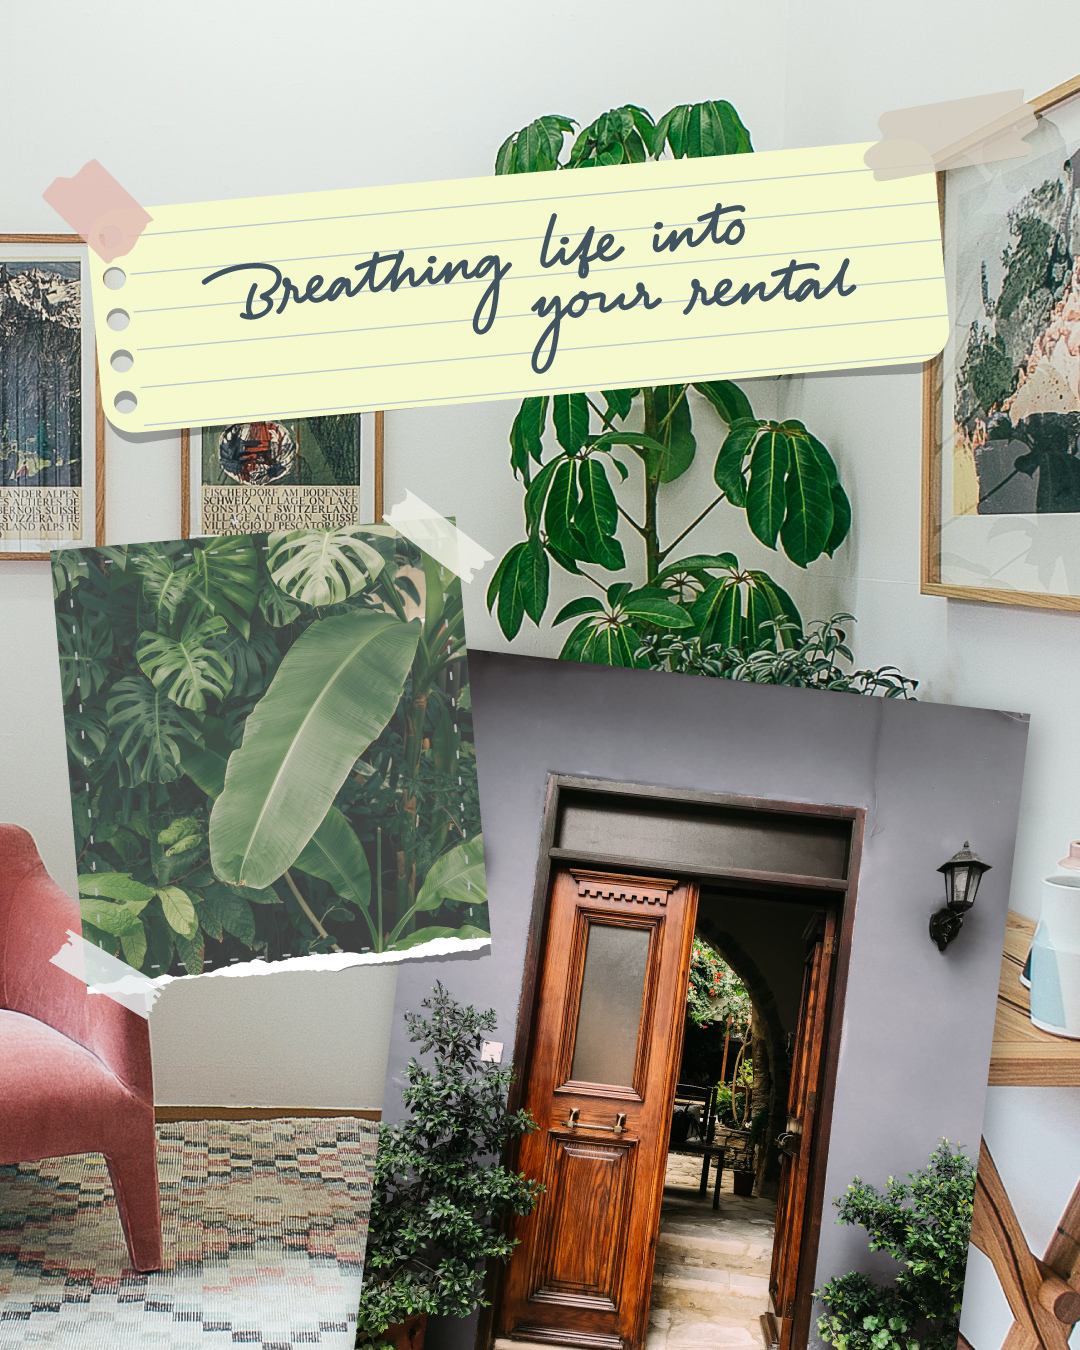 Breathing life into your rental